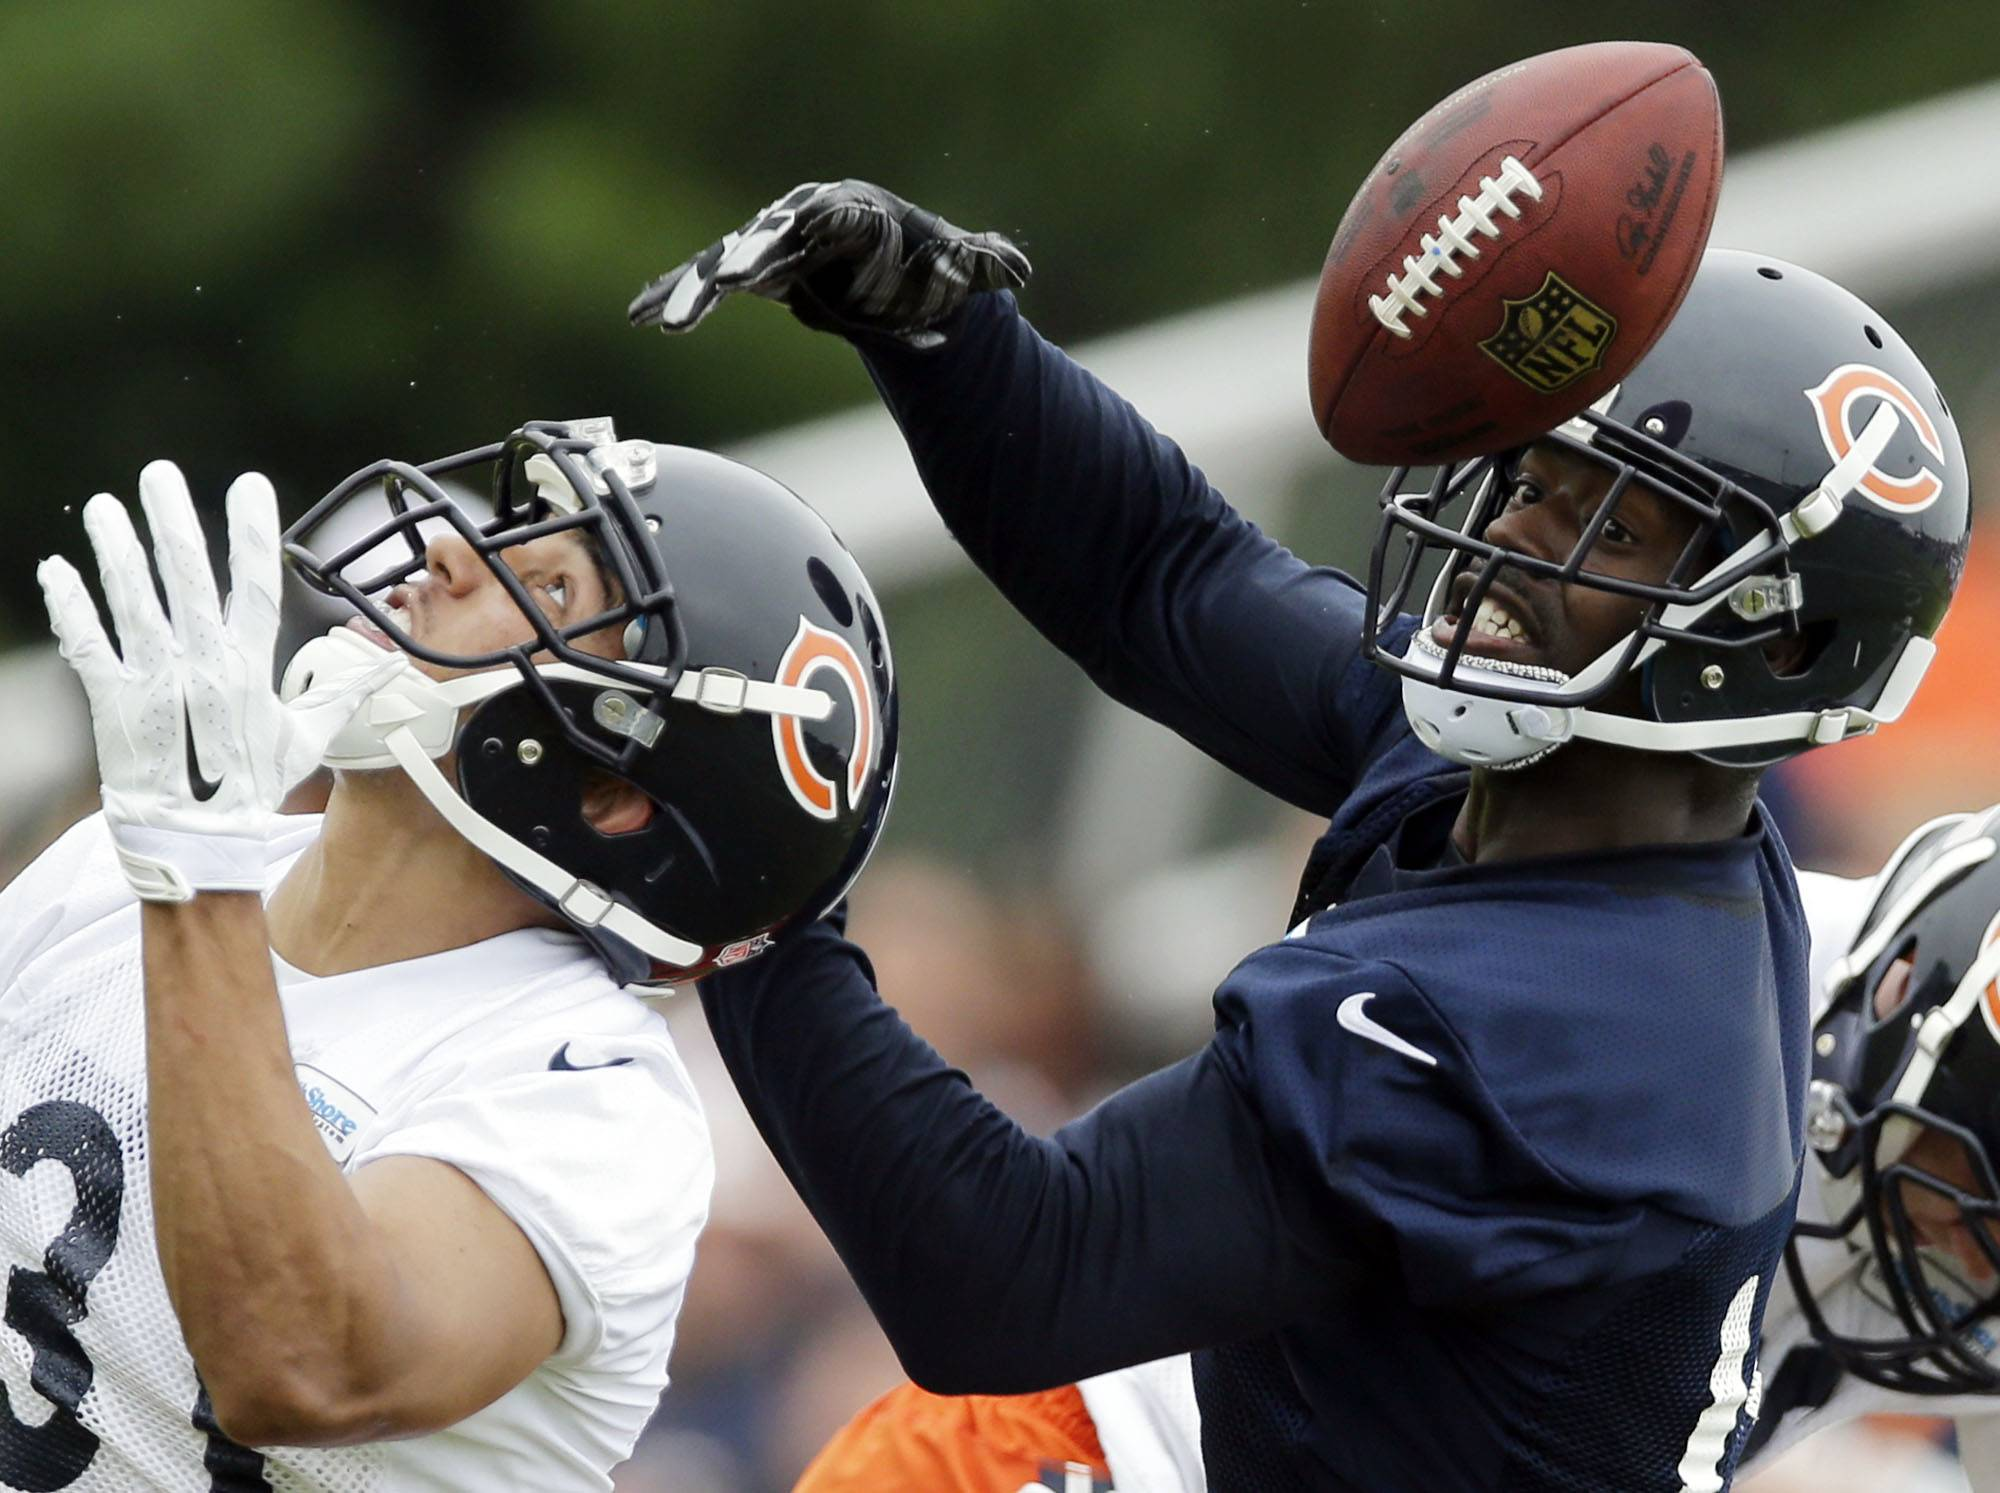 Bears wide receiver Josh Morgan, right, and cornerback Isaiah Frey try to catch a ball Saturday during training camp in Bourbonnais, Ill.